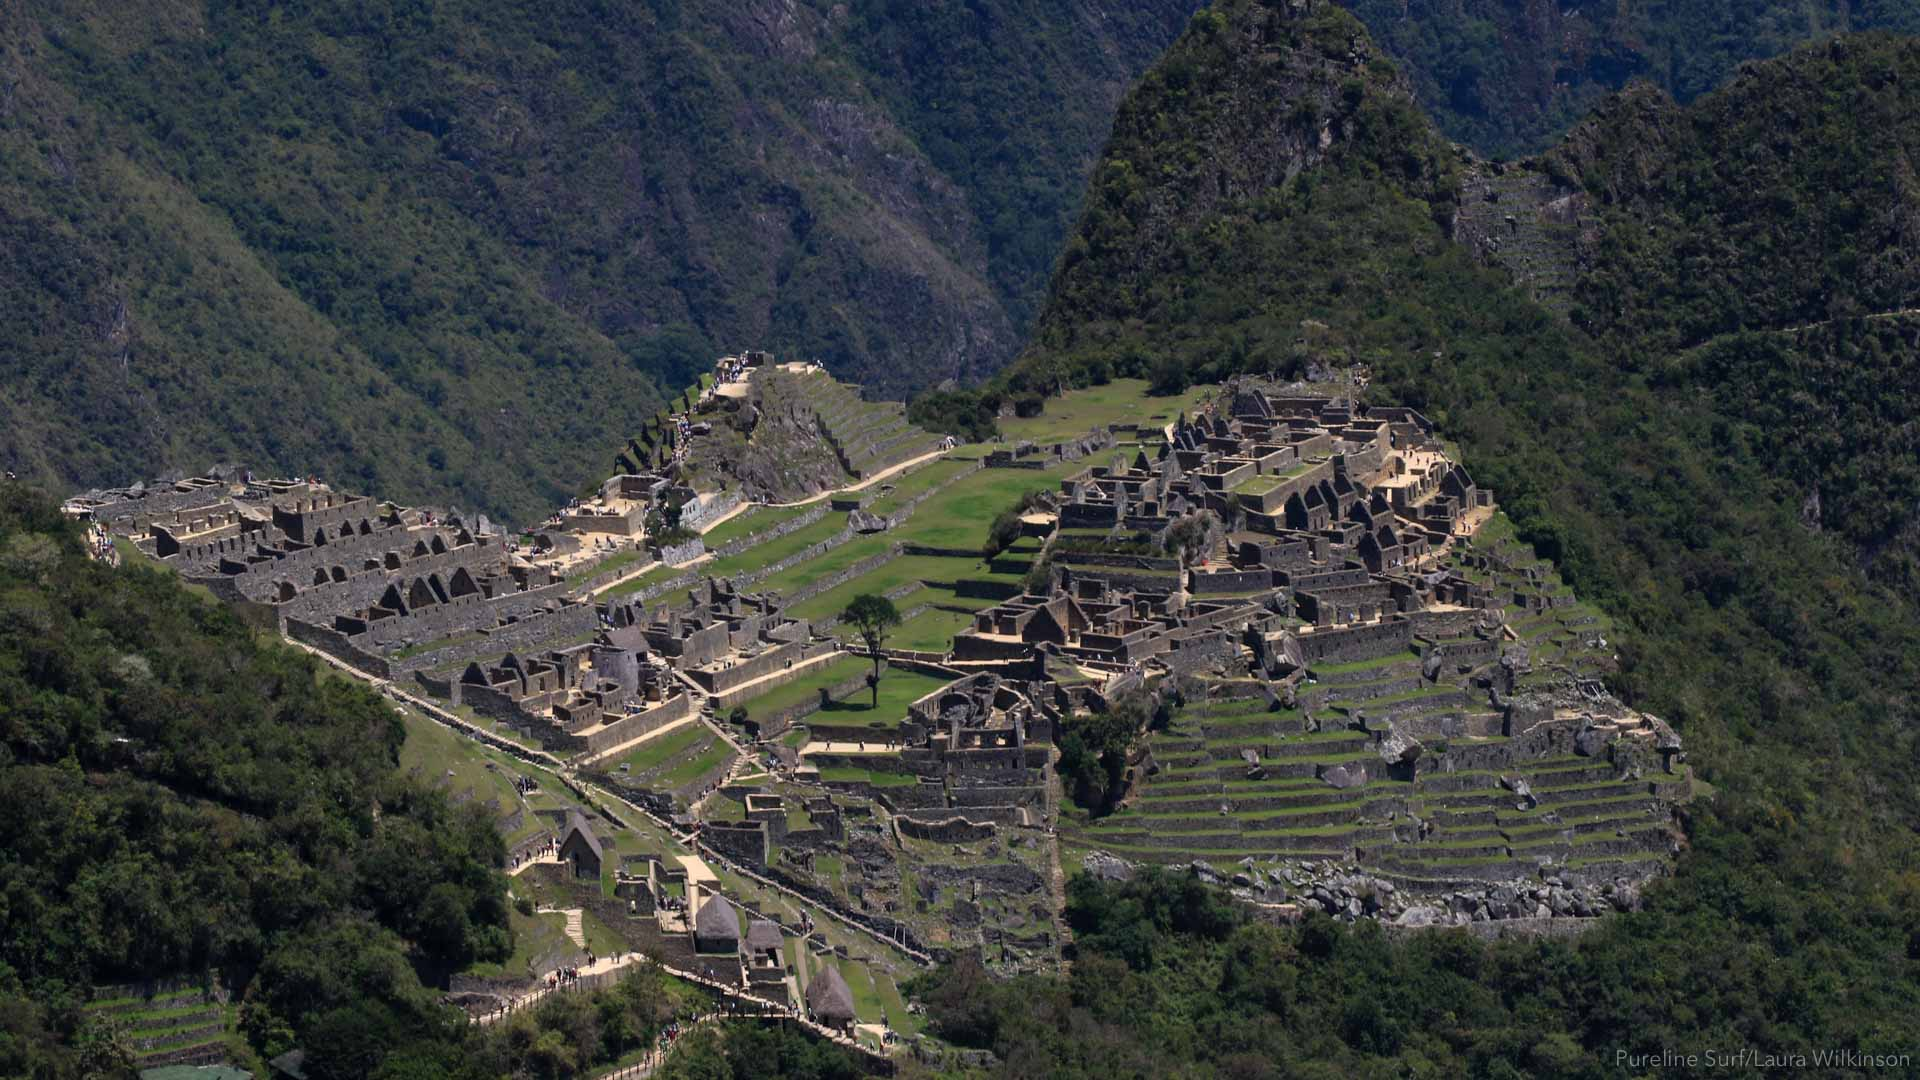 Macchu Picchu can be combined with a worldwide surf coaching trip with Pureline Surf to Peru